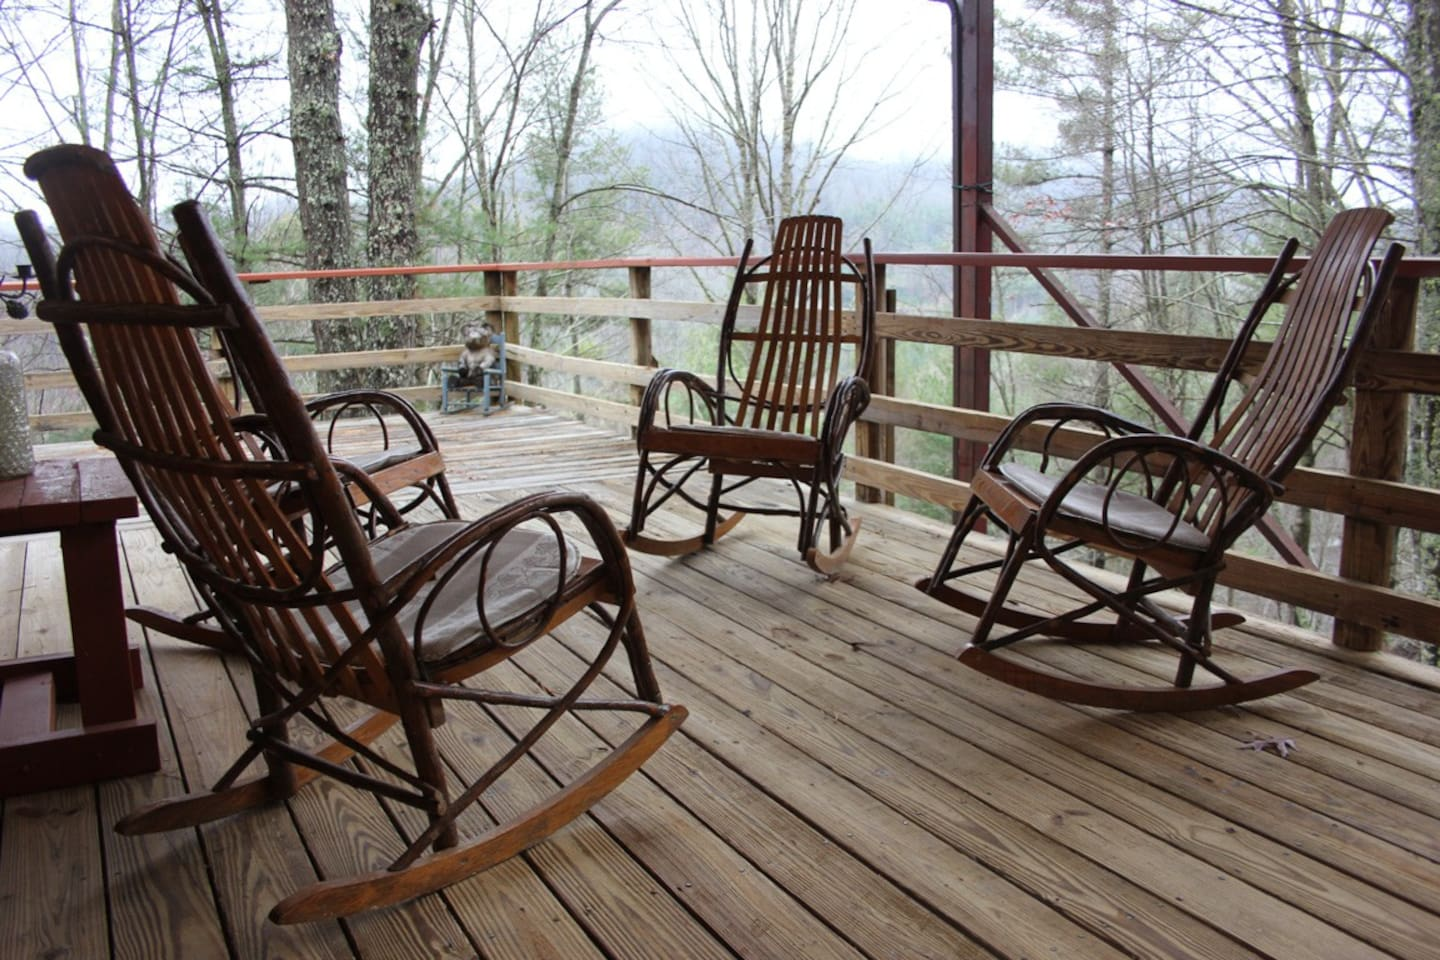 Relax and rock on a covered deck.